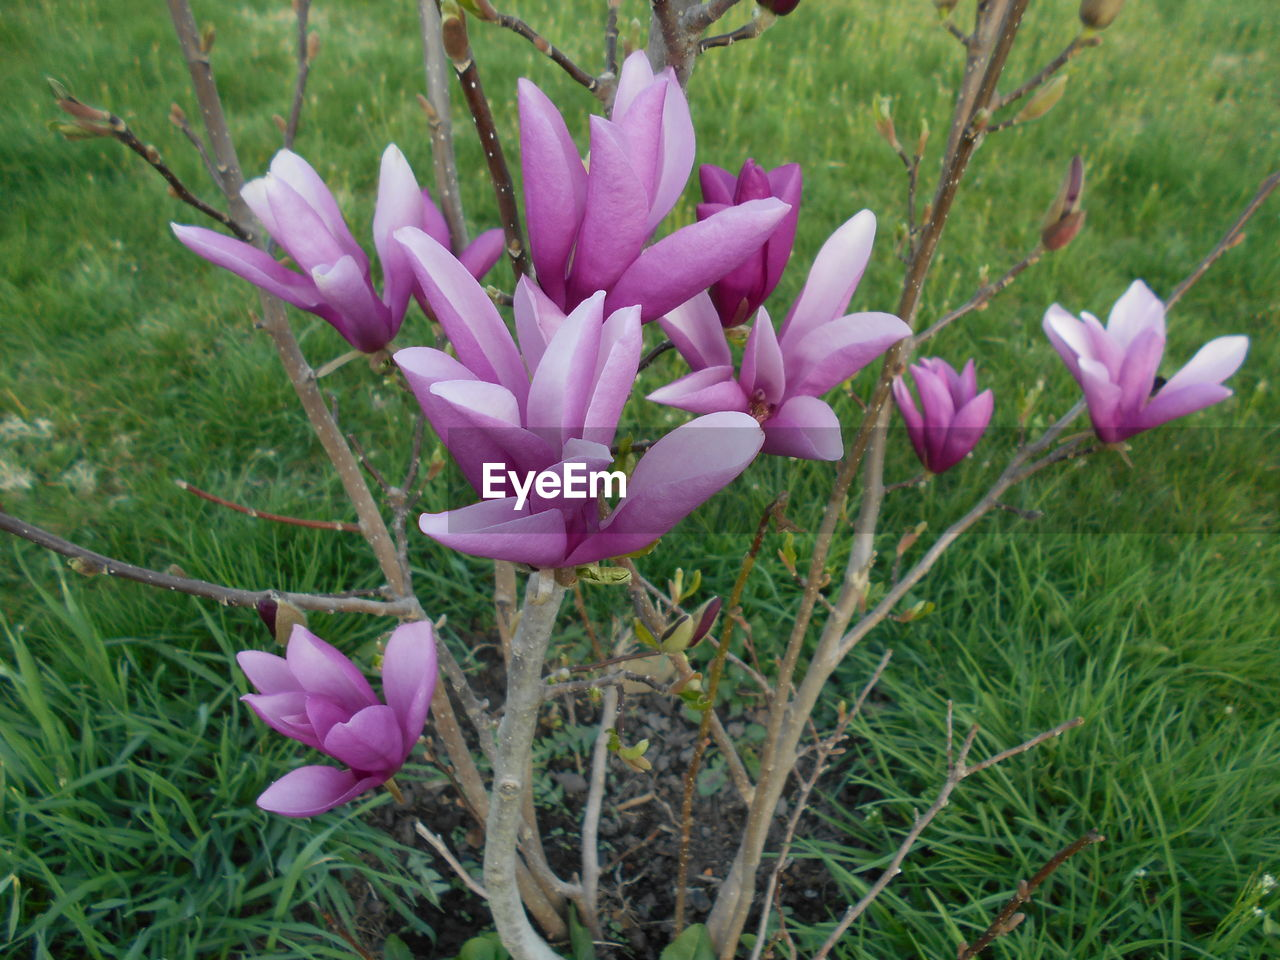 plant, flowering plant, flower, beauty in nature, growth, pink color, freshness, vulnerability, close-up, fragility, petal, nature, no people, inflorescence, field, day, land, flower head, grass, purple, outdoors, crocus, springtime, iris